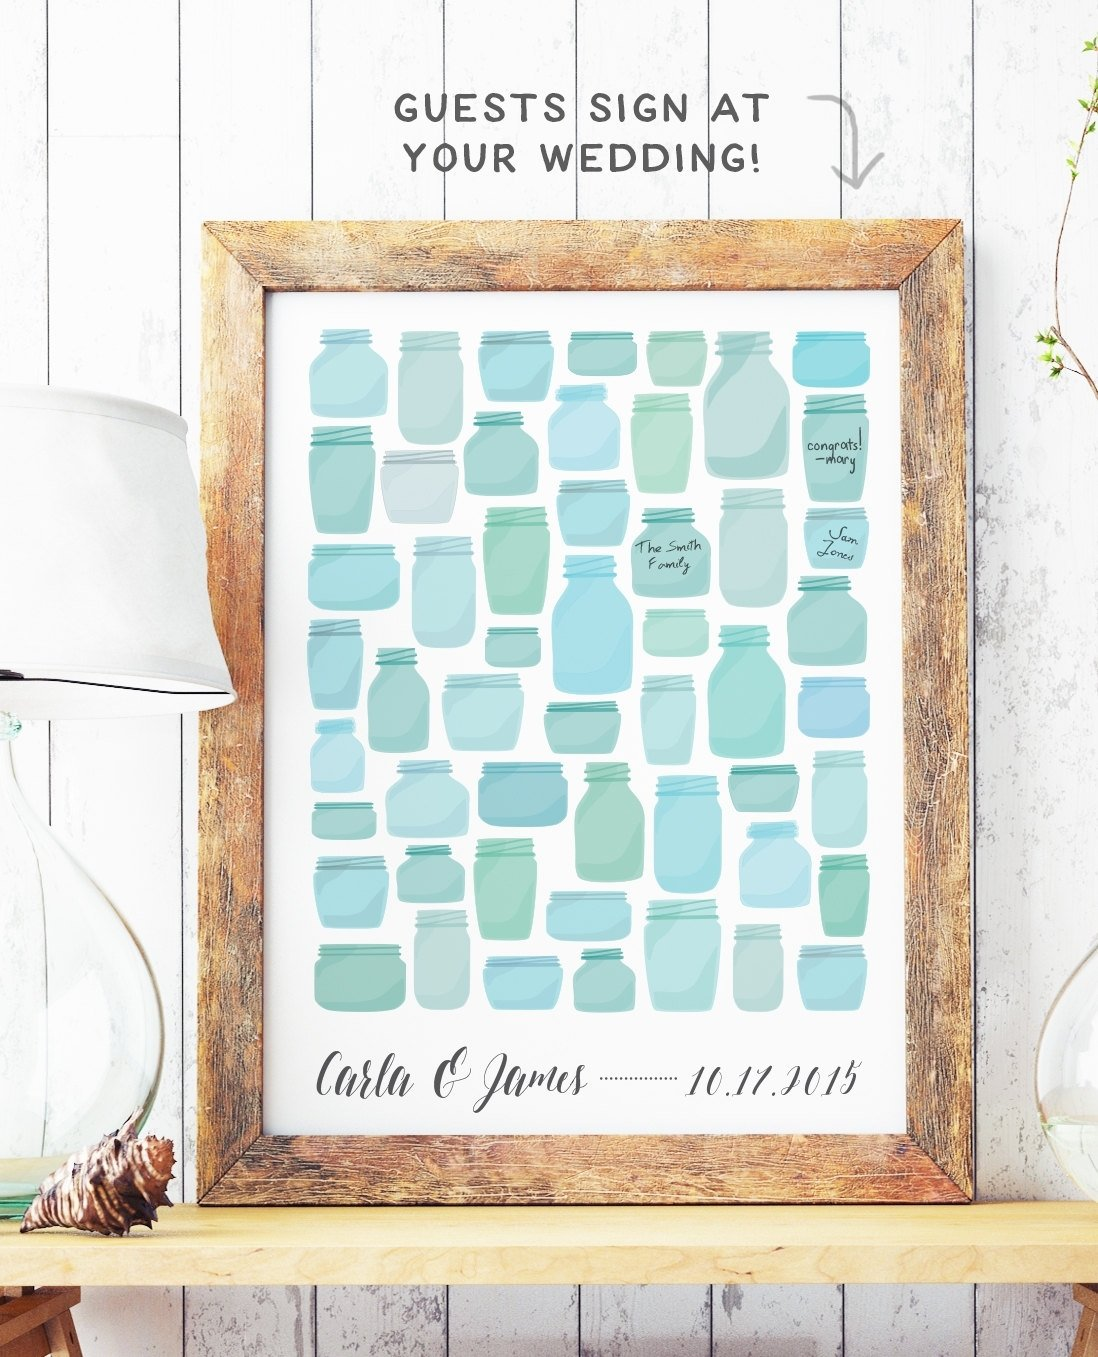 10 Most Recommended Alternative Wedding Guest Book Ideas creative guest book alternatives from etsy the budget savvy bride